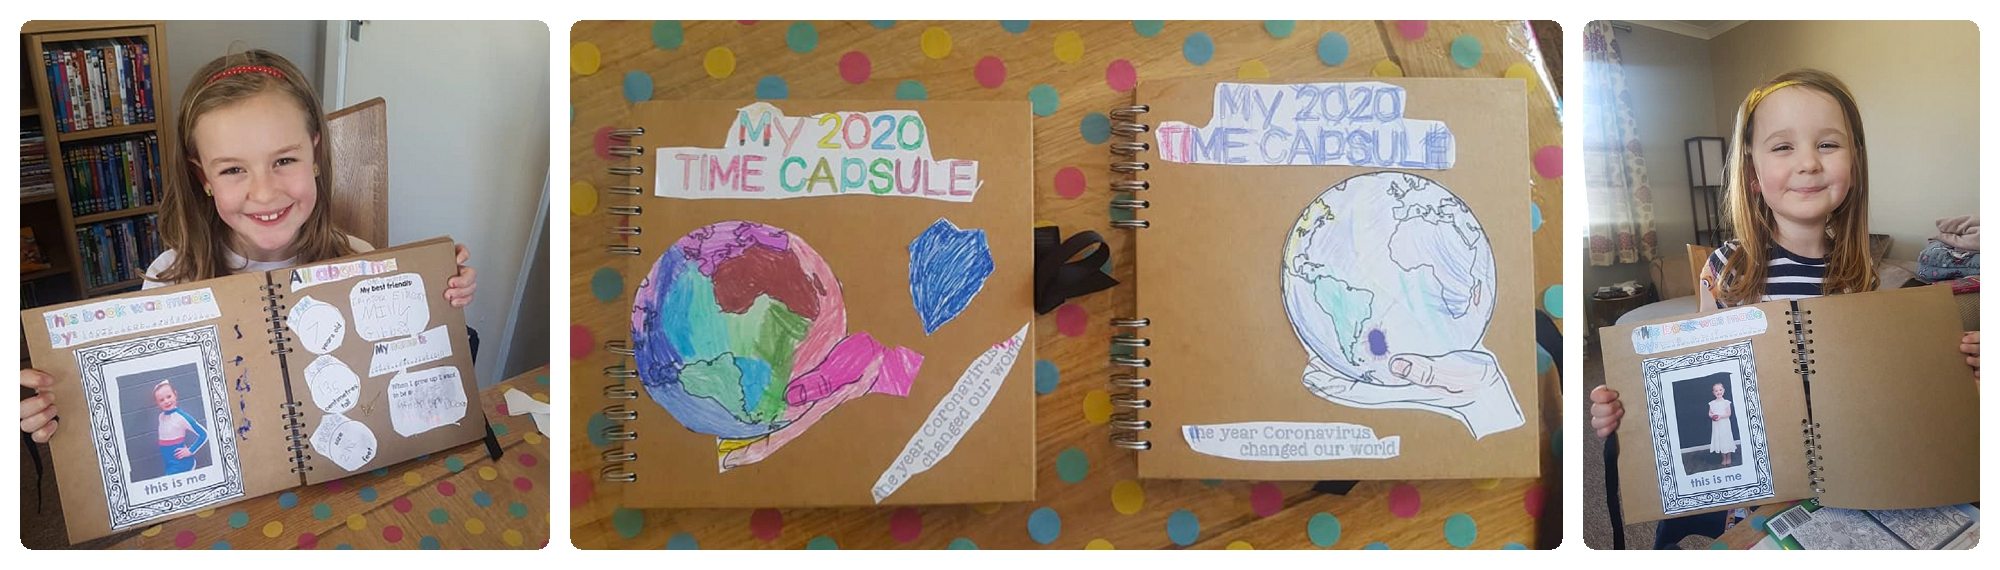 Time Capsule Scrapbooks Life in Focus Portraits 2020 Time Capsule Family Photographer Cardross